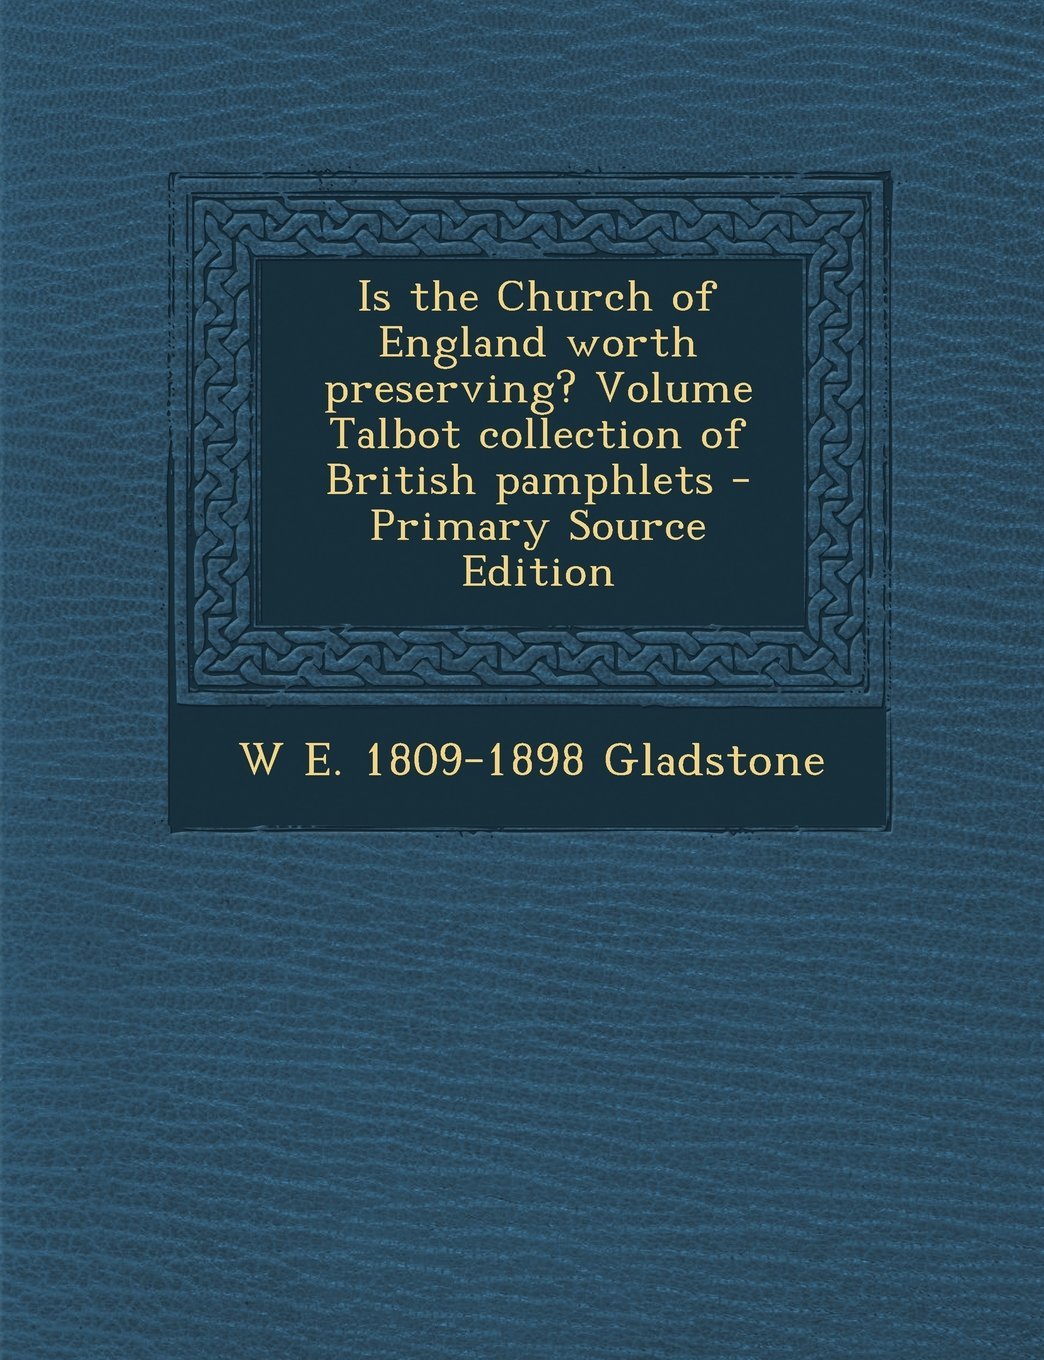 Read Online Is the Church of England Worth Preserving? Volume Talbot Collection of British Pamphlets PDF